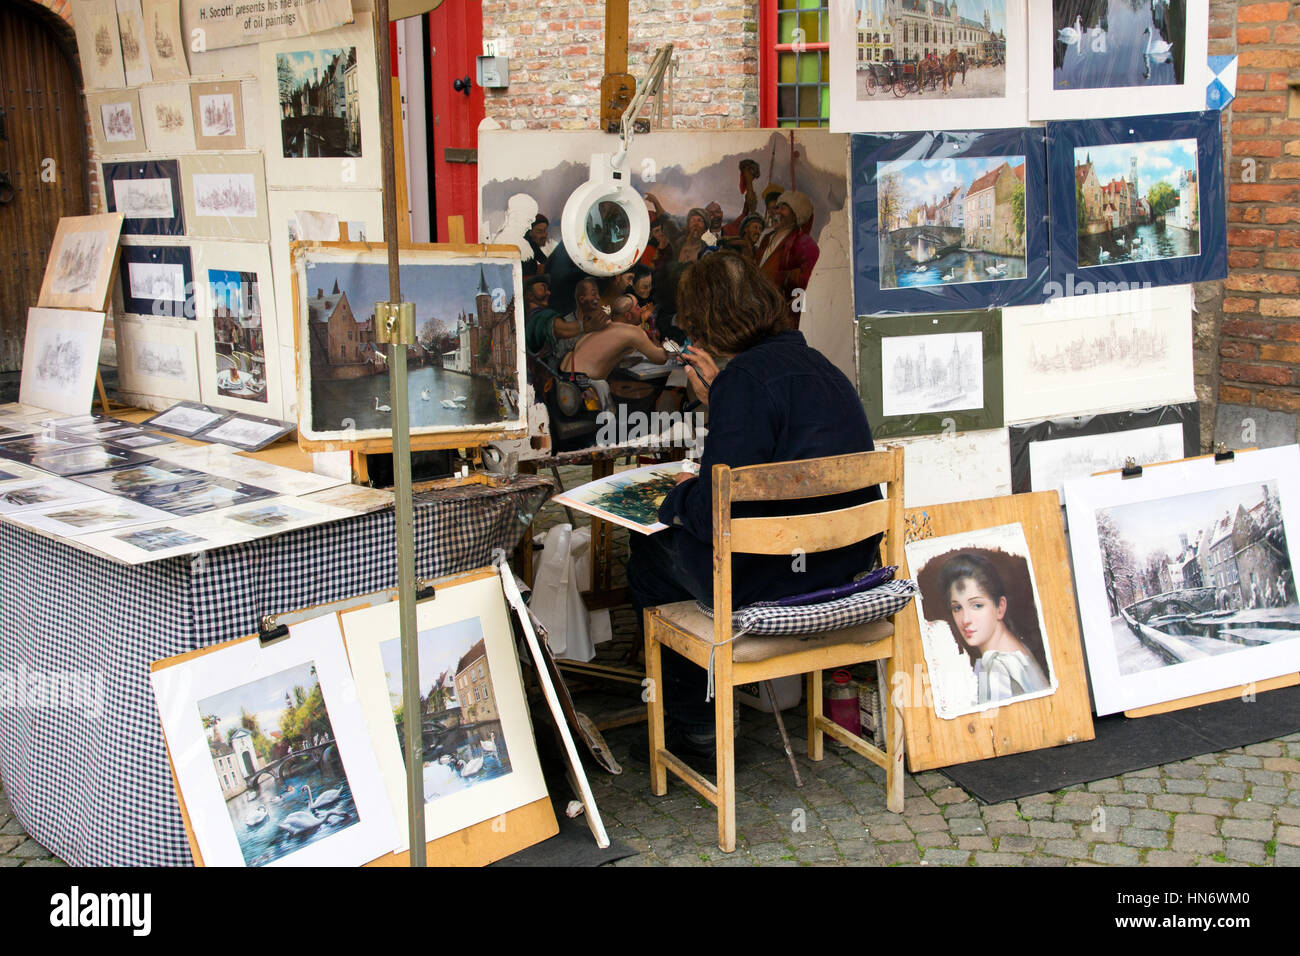 BRUGES, BELGIUM - JUNE 18: Fine art painter H. Socotti in Bruges, Belgium on June 18, 2013. - Stock Image